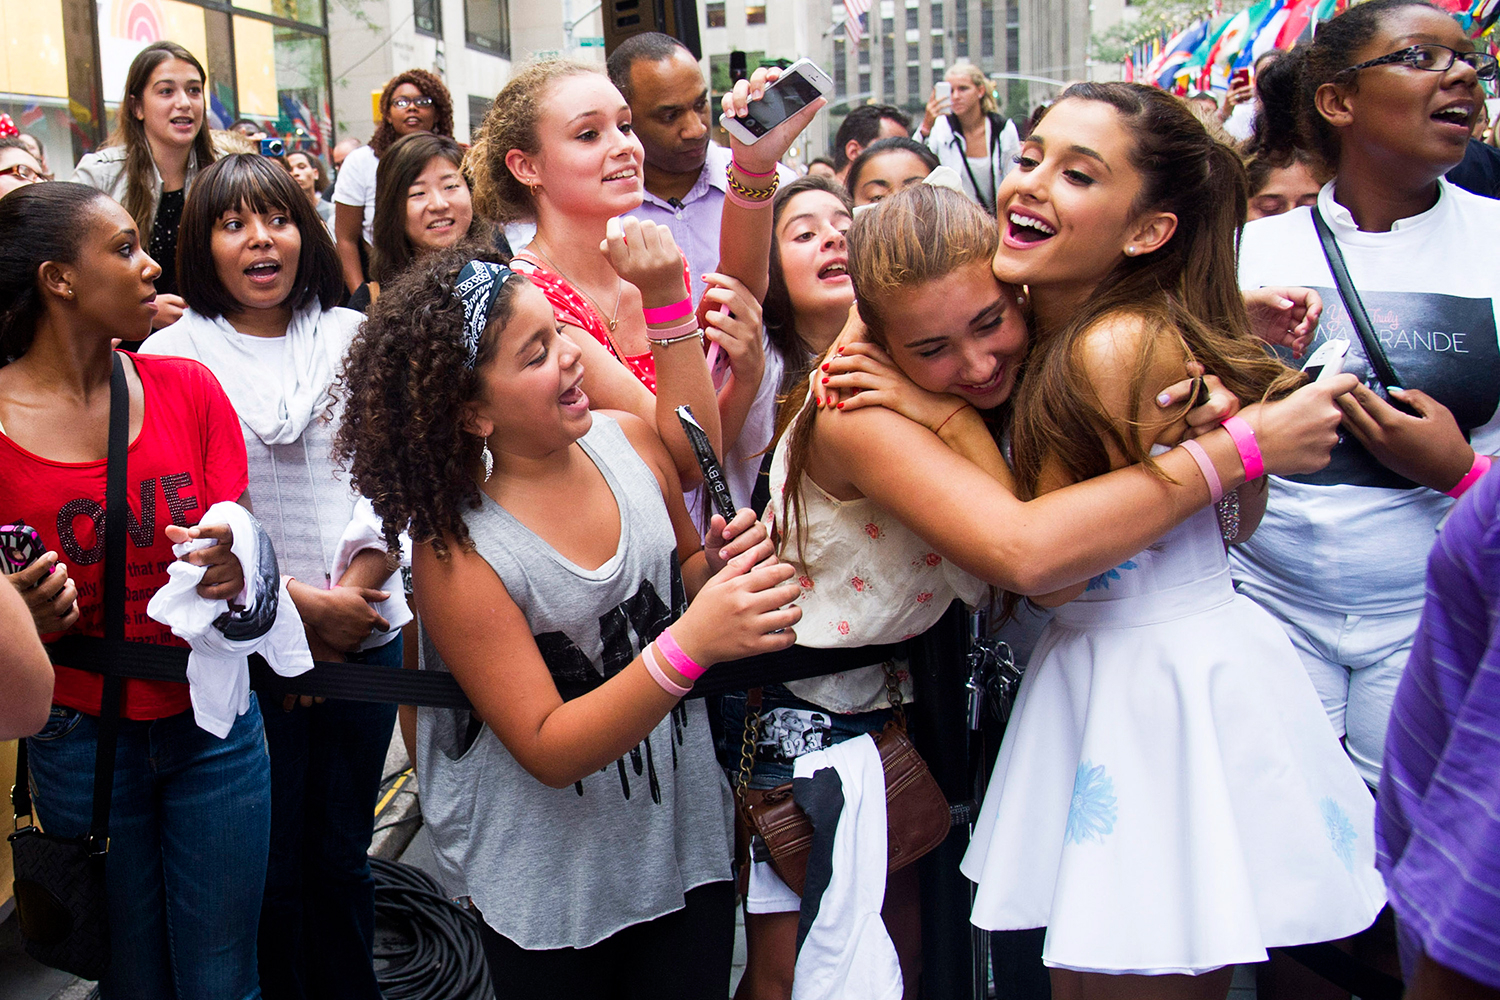 How Ariana Grandes Fan Family Is Coping After Manchester Bombing